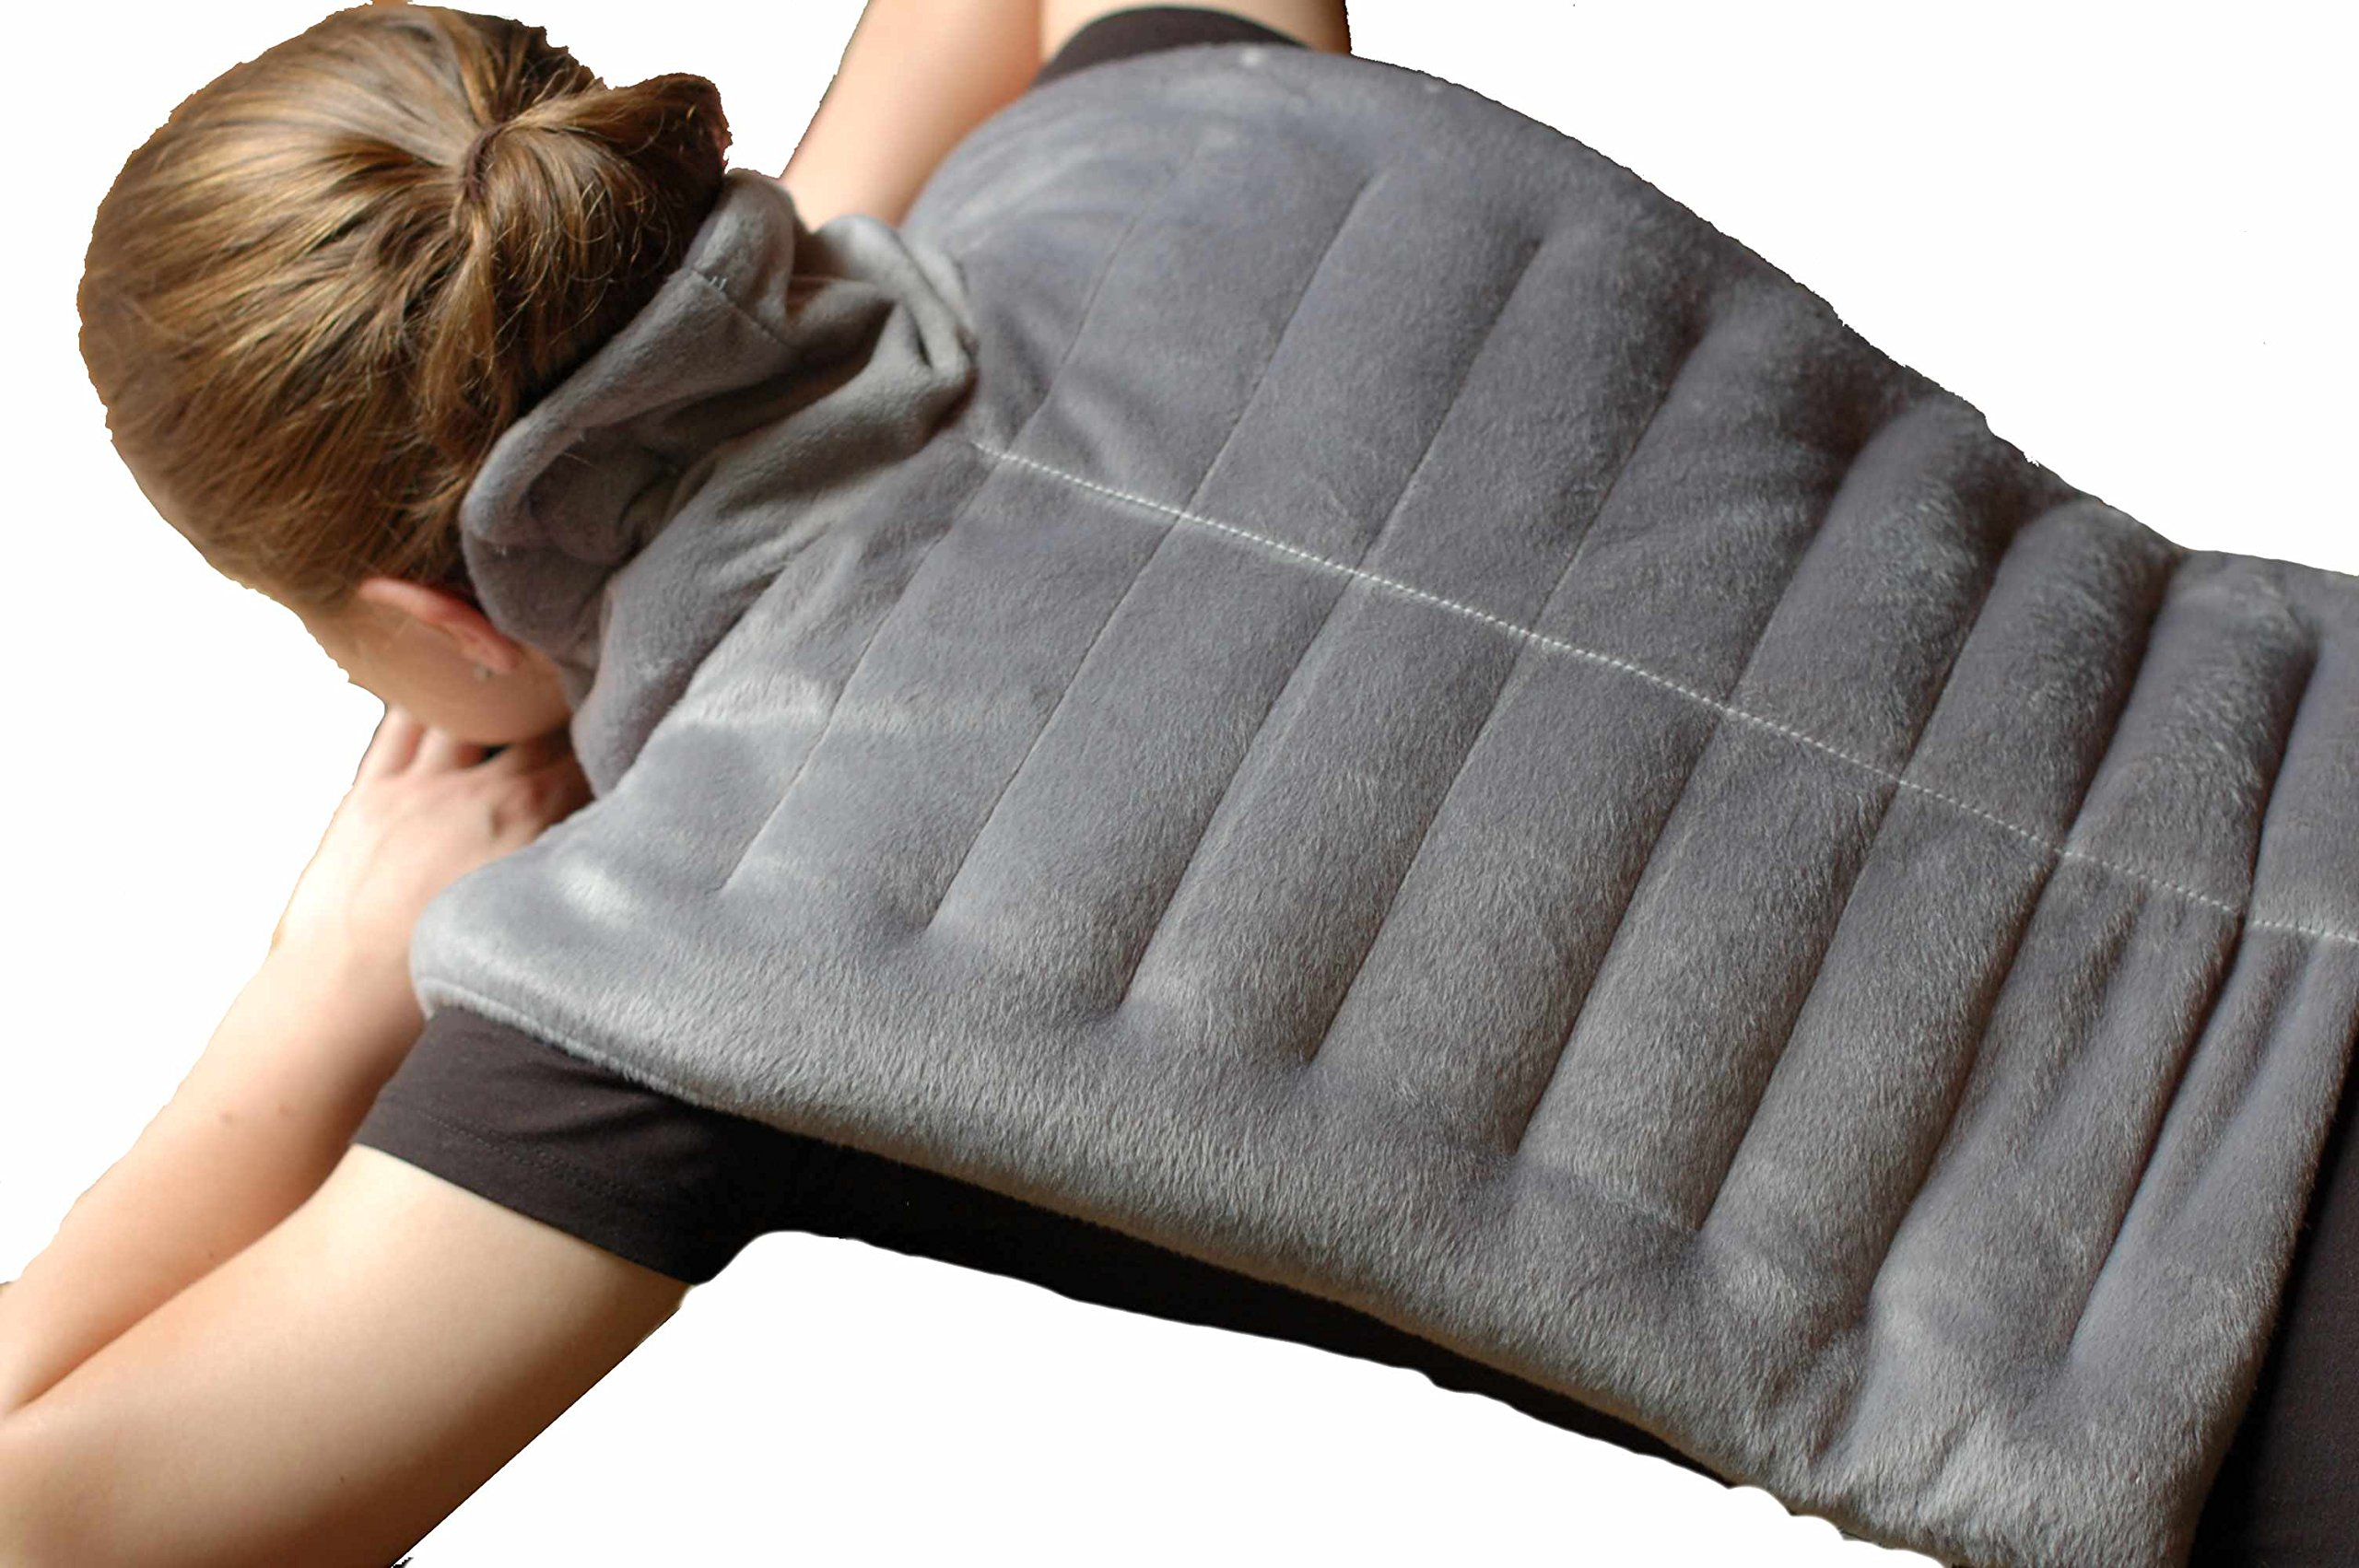 Premium Heated Herbal Hot/Cold Therapy Neck, Shoulder and Back Wrap - 16'' x 24''